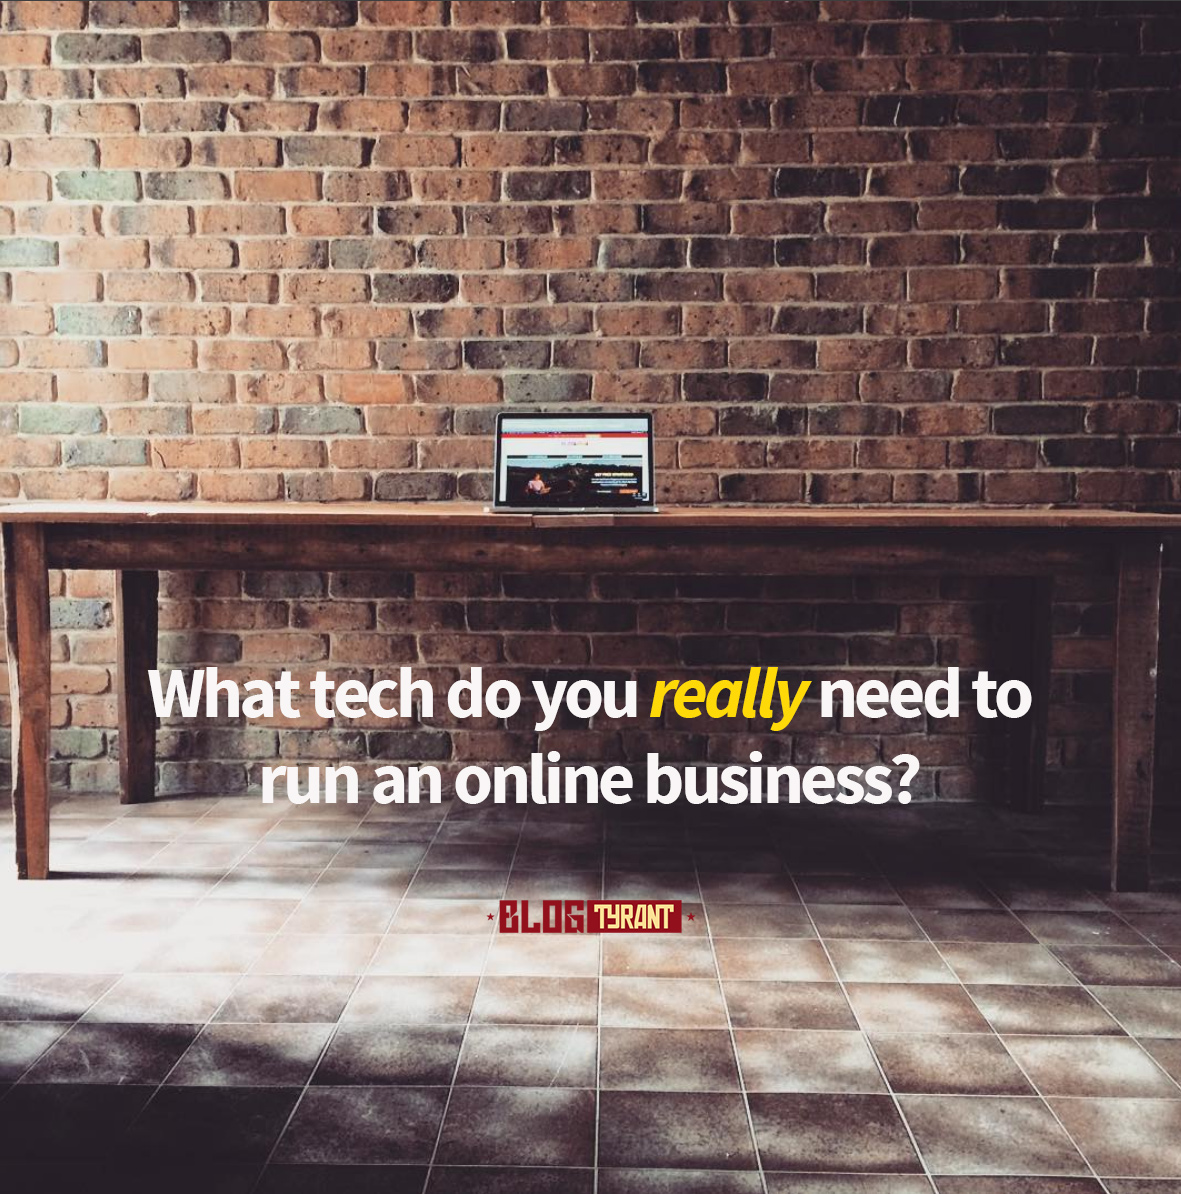 Debunked: What Tech Do You Really Need to Run an Online Business?